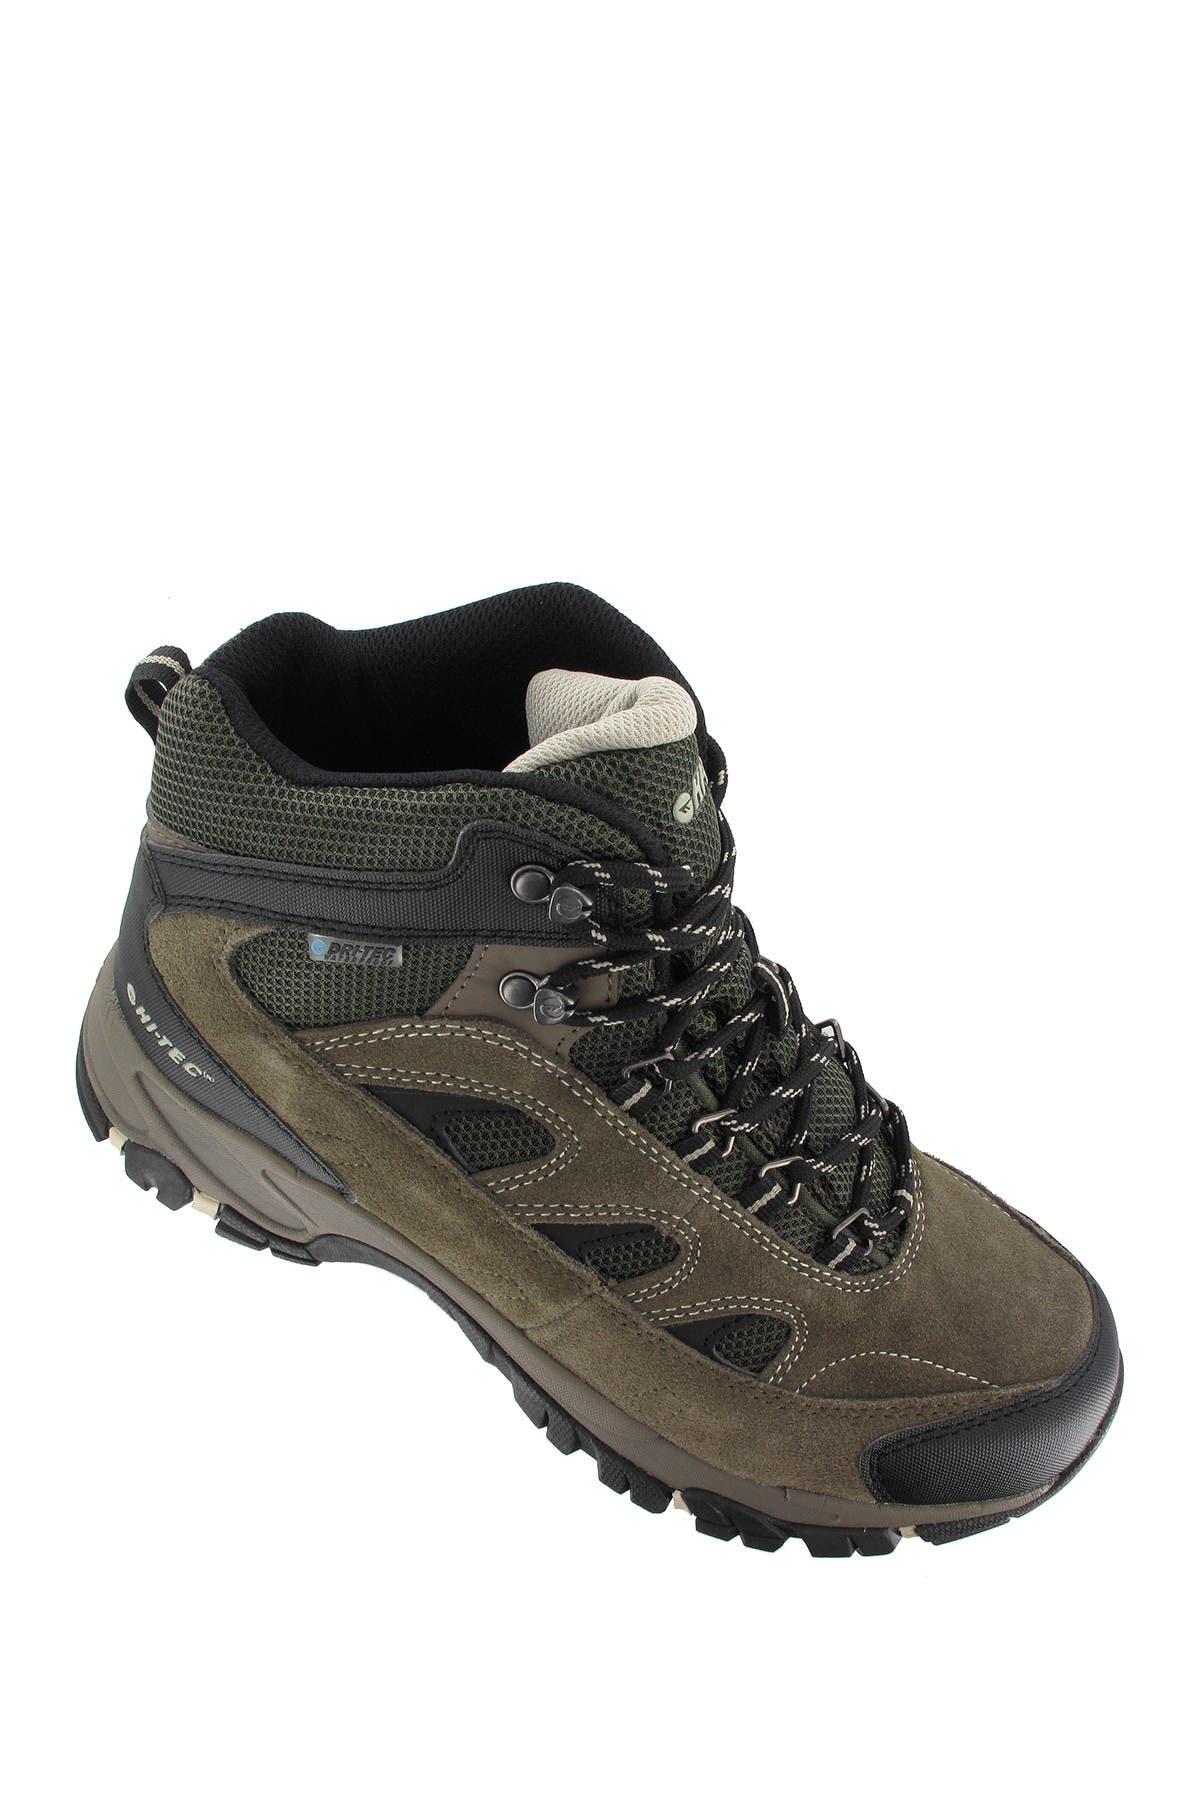 Image of Hi-Tec Ramsey Waterproof Hiking Boot